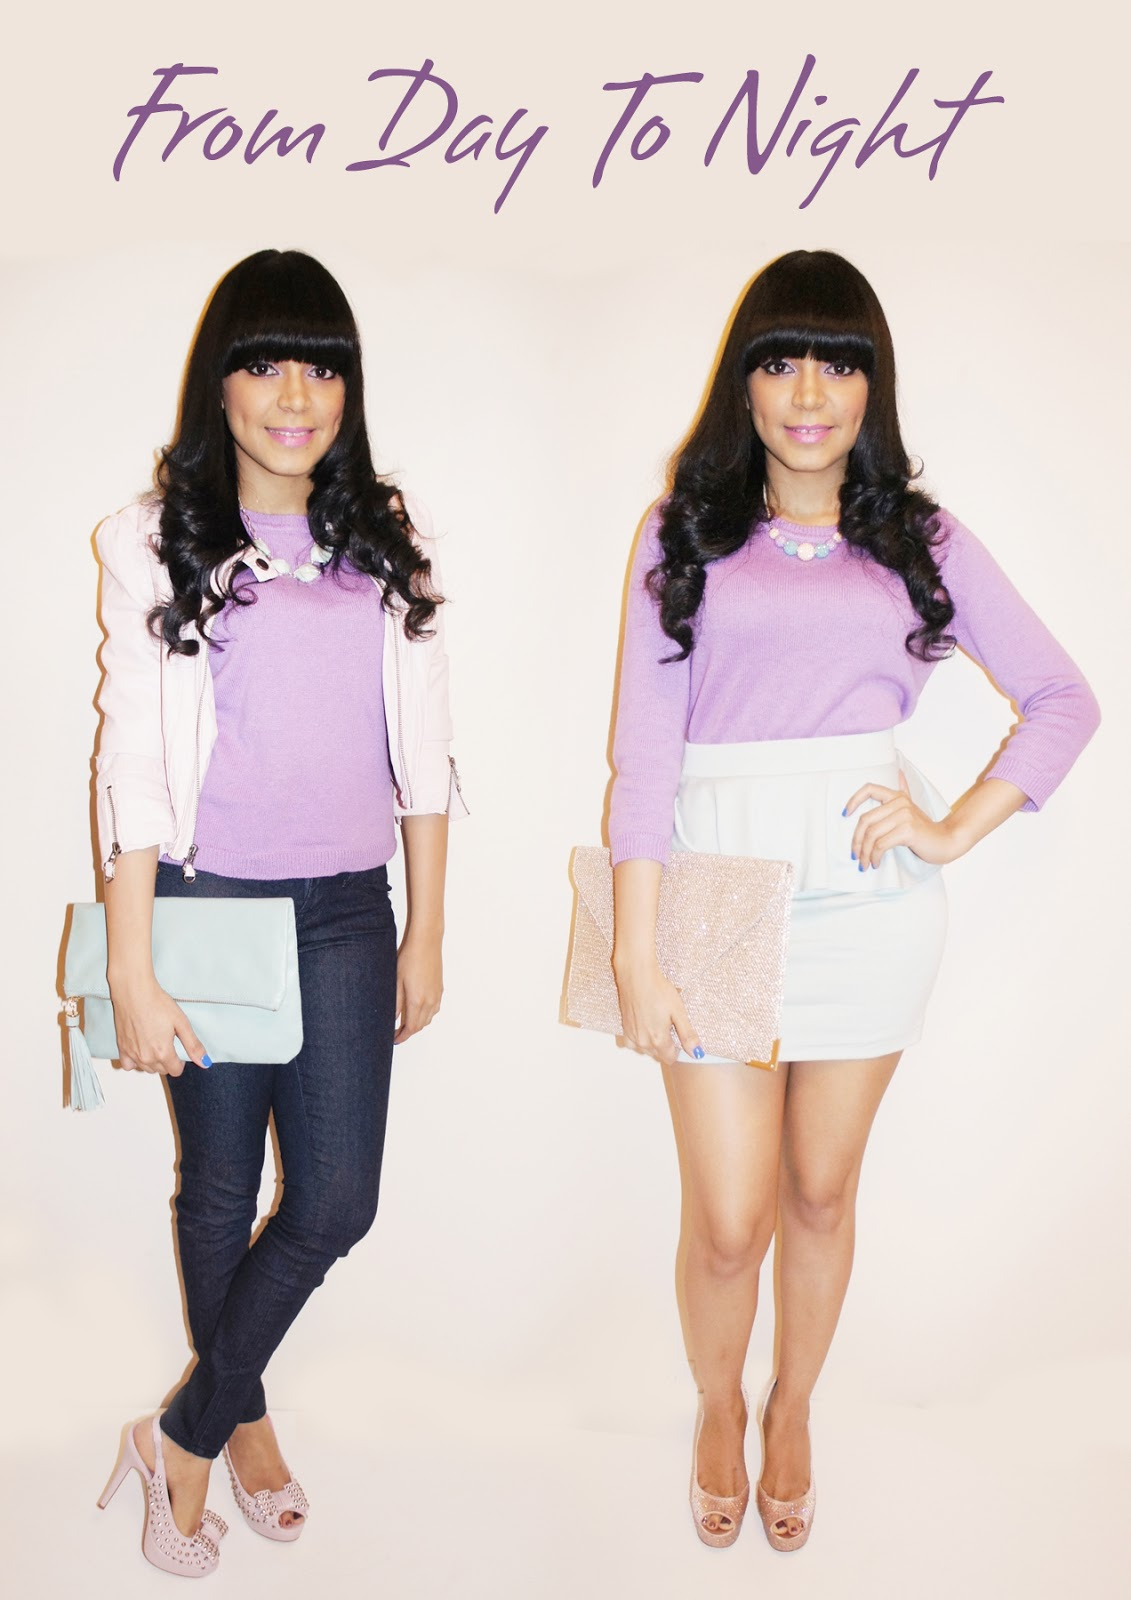 f840ddb918 From Day To Night  The Lavender Sweater - Katy009 Fashion